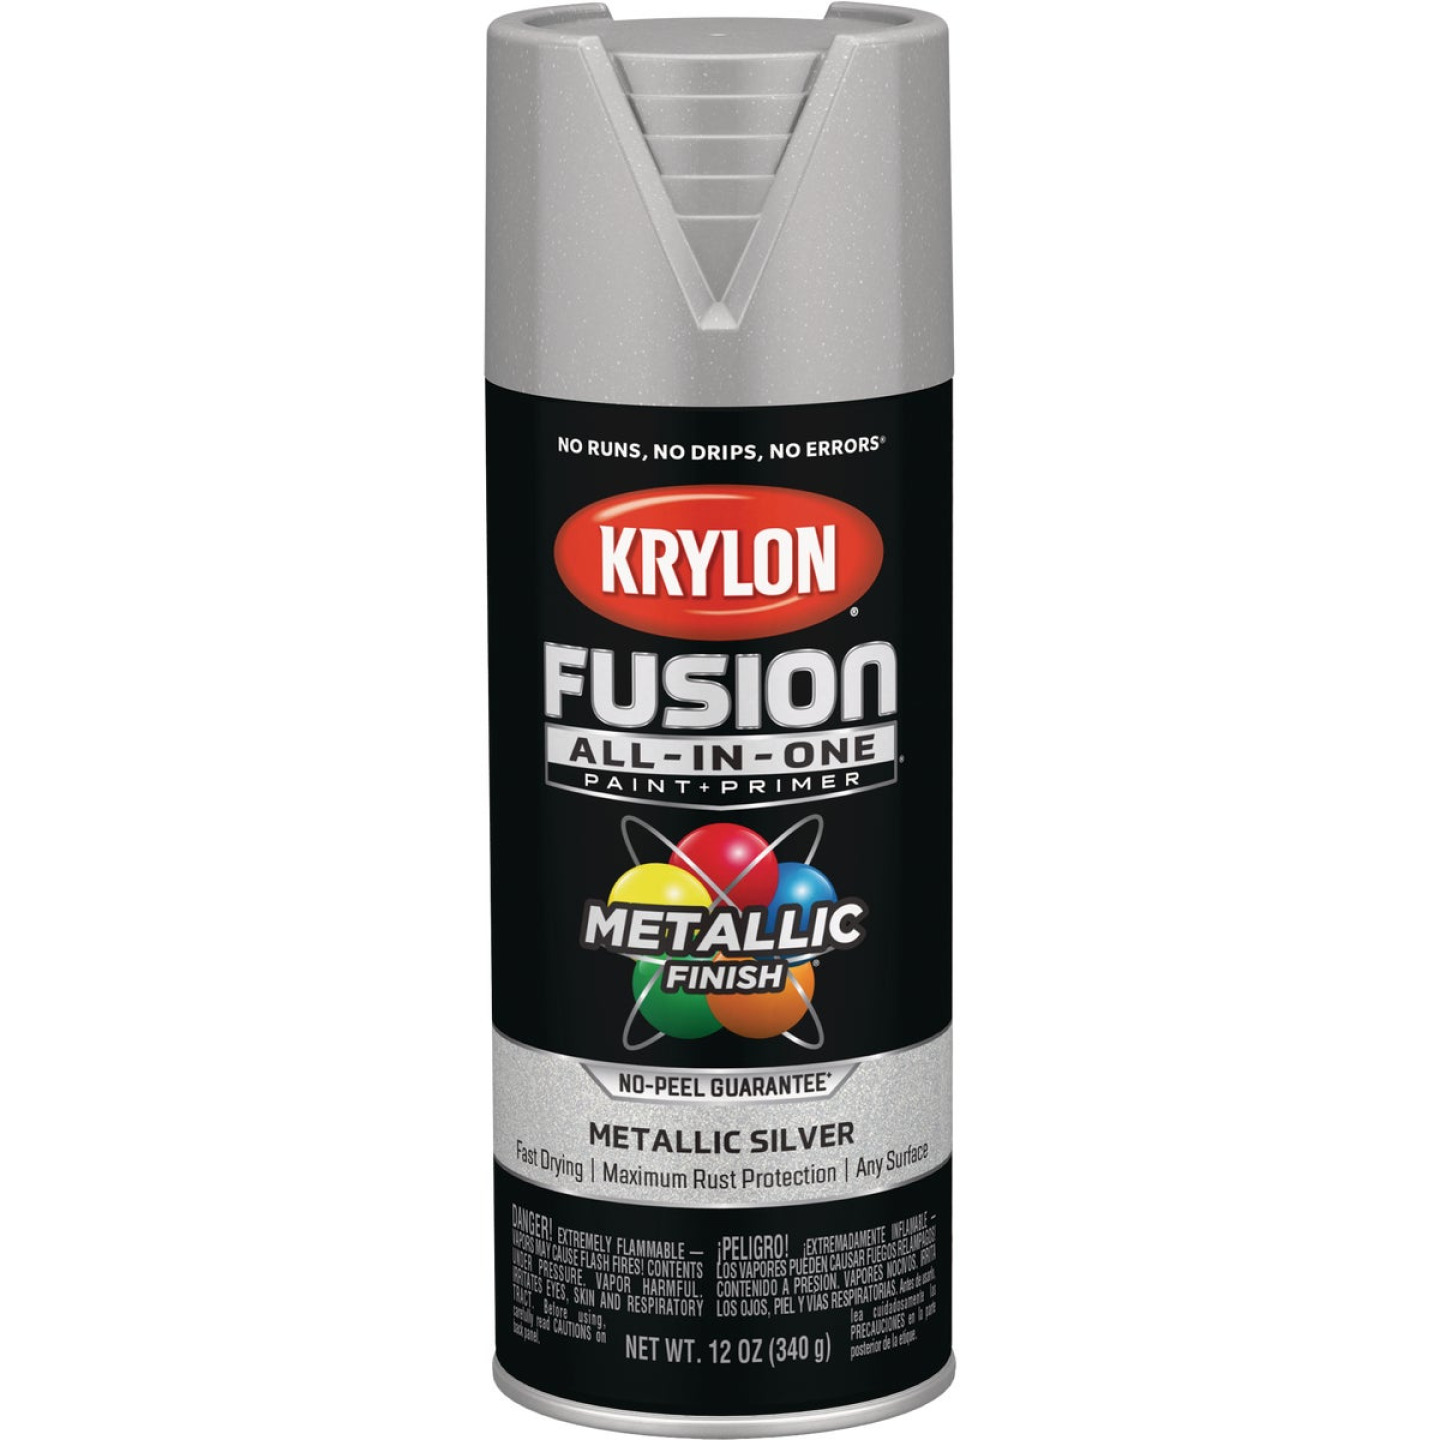 Krylon Fusion All-In-One Metallic Spray Paint & Primer, Silver Image 1